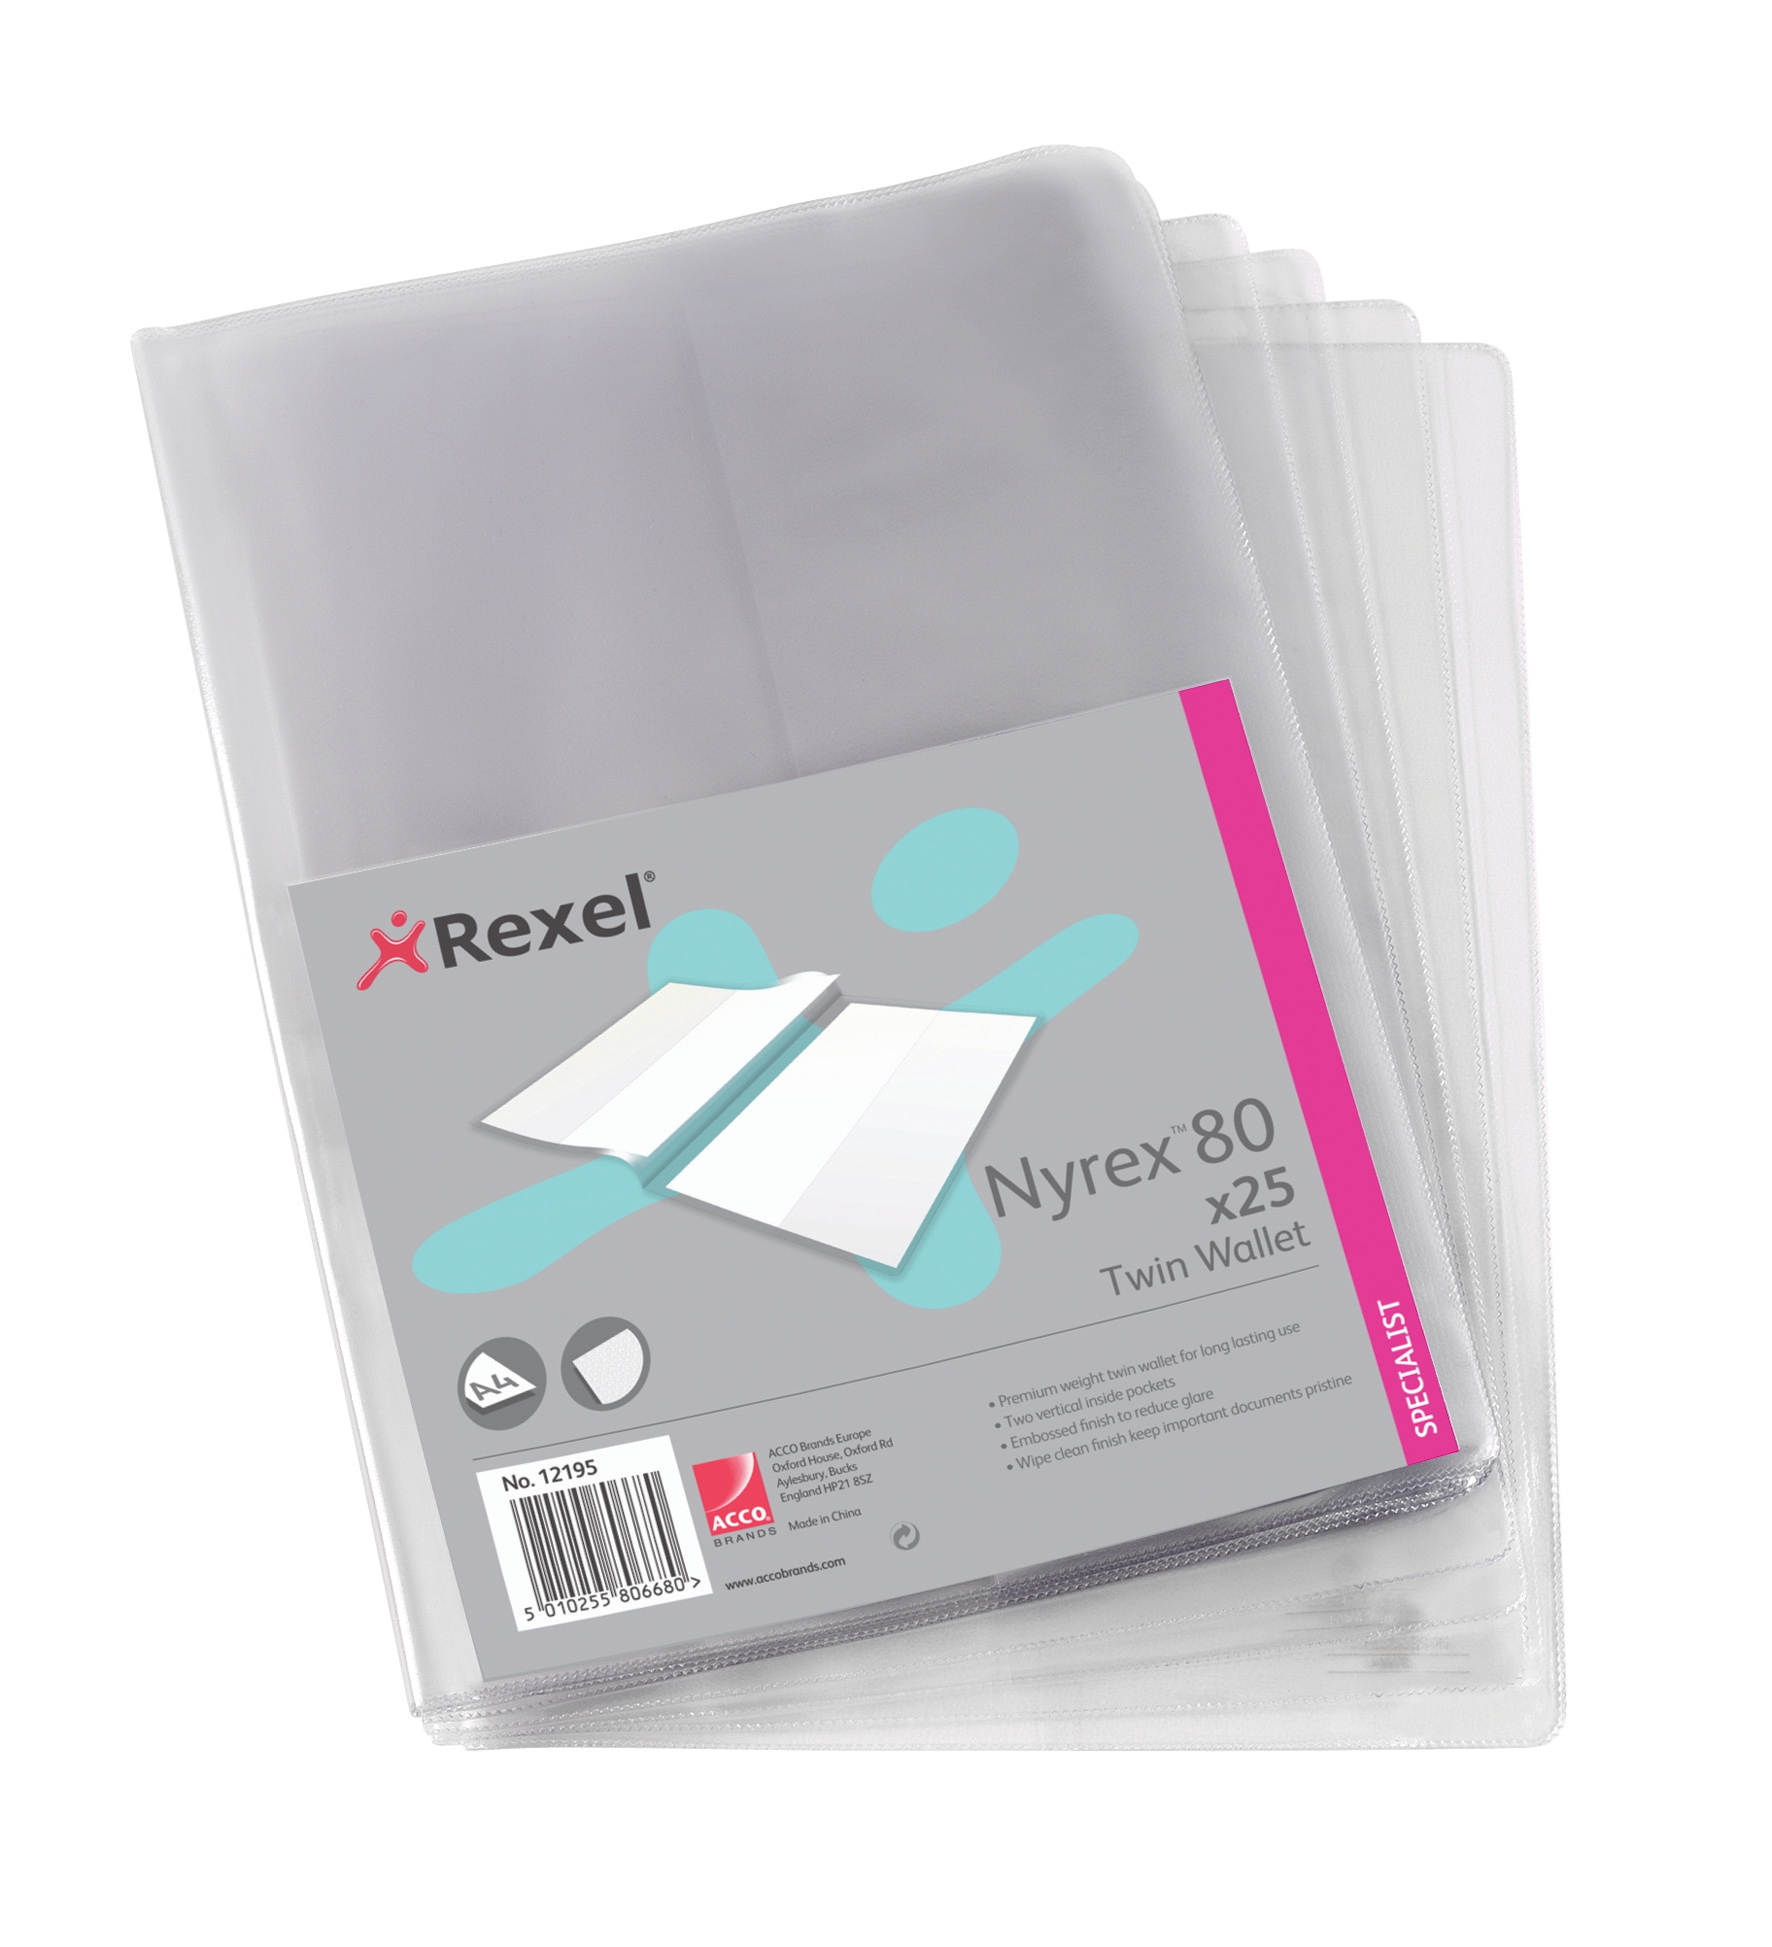 Rexel Nyrex 80 Twin Wallet with 2 Vertical Inside Pockets A4 Clear Ref 12195 [Pack 25]